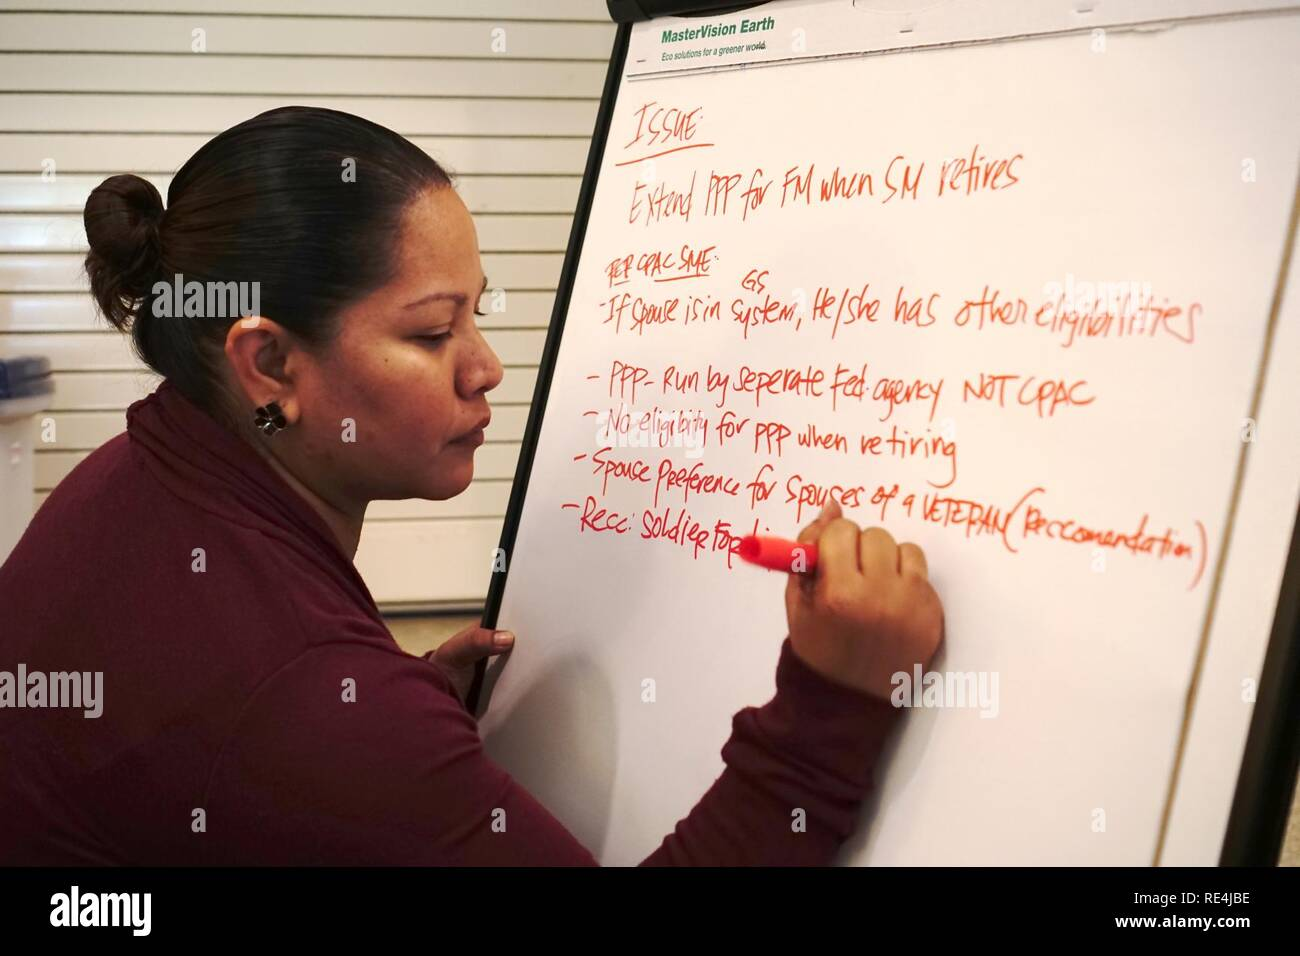 Jeanne Sablan transcribes possible solutions to concerns brought up by delegates at the Army Family Action Plan conference held at the Nehelani, Nov. 15. Stock Photo